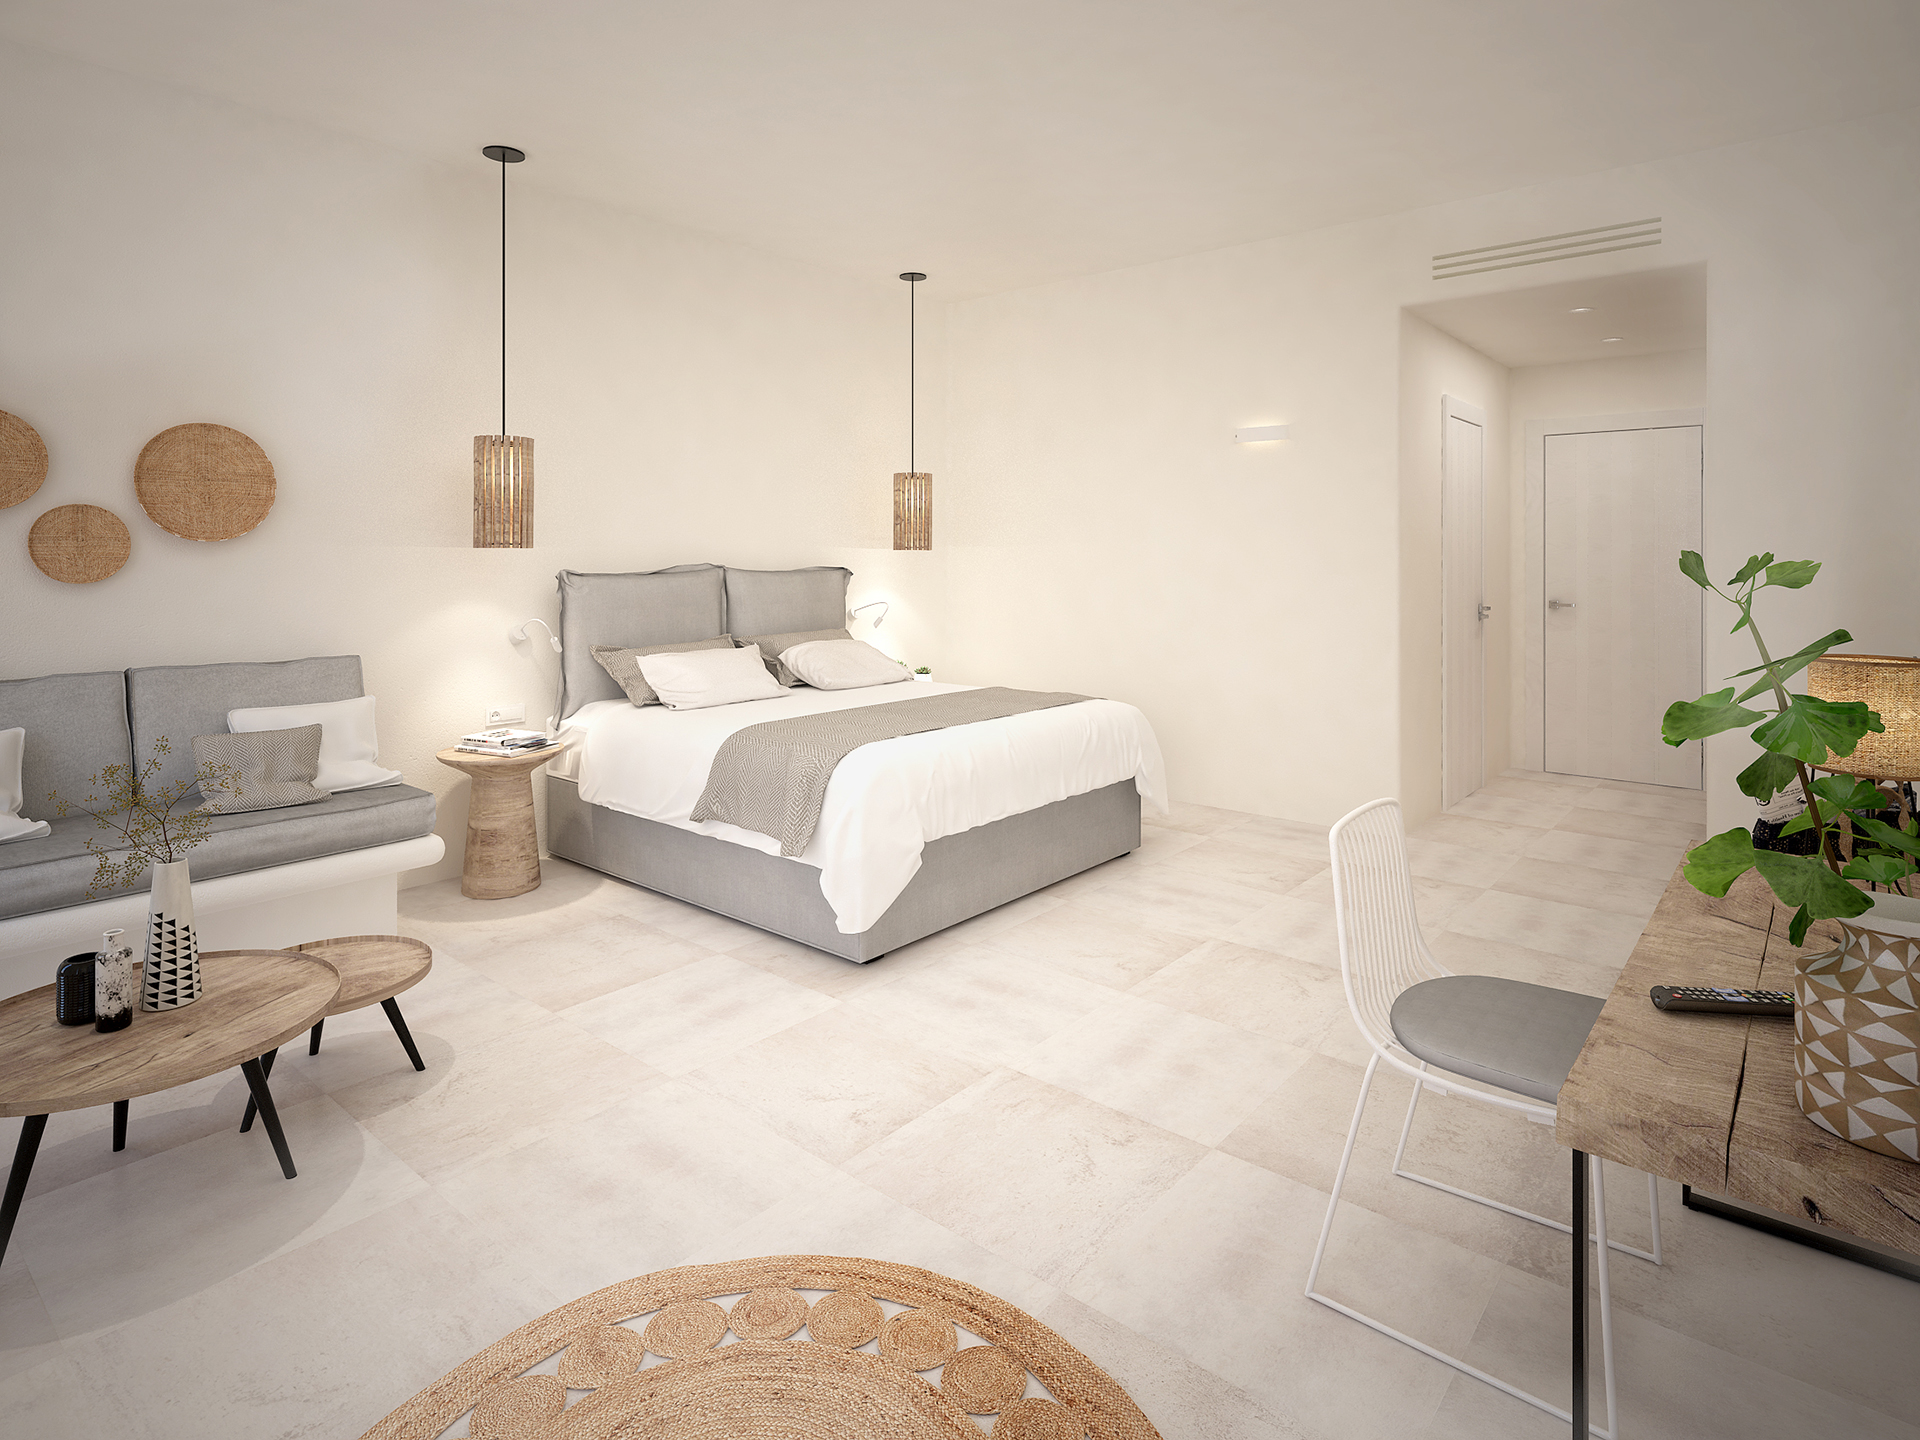 EUPHORIA MASTER SUITE WITH PRIVATE POOL & SEA VIEW